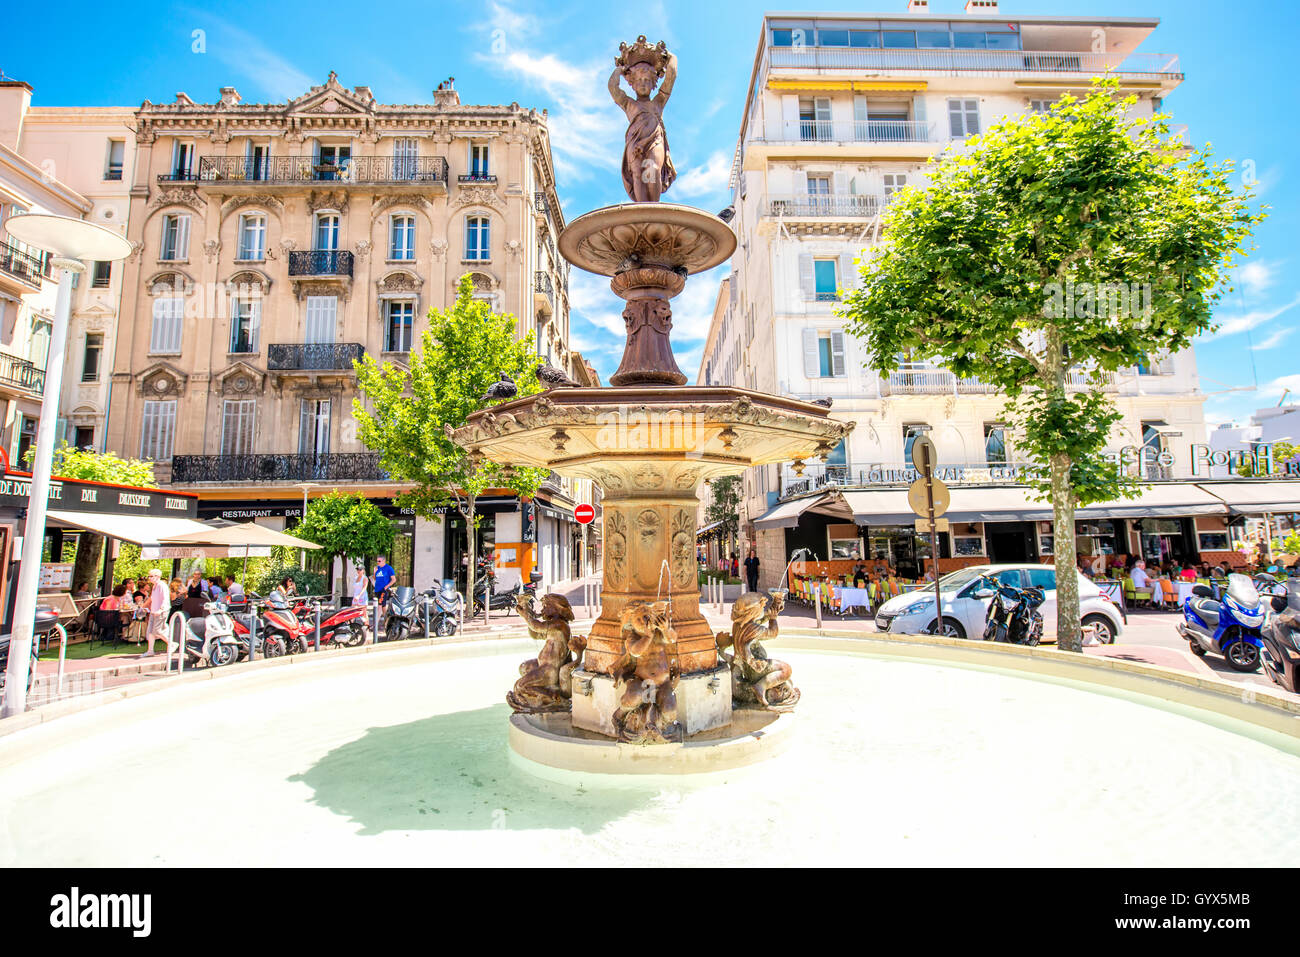 Fountain in Cannes - Stock Image